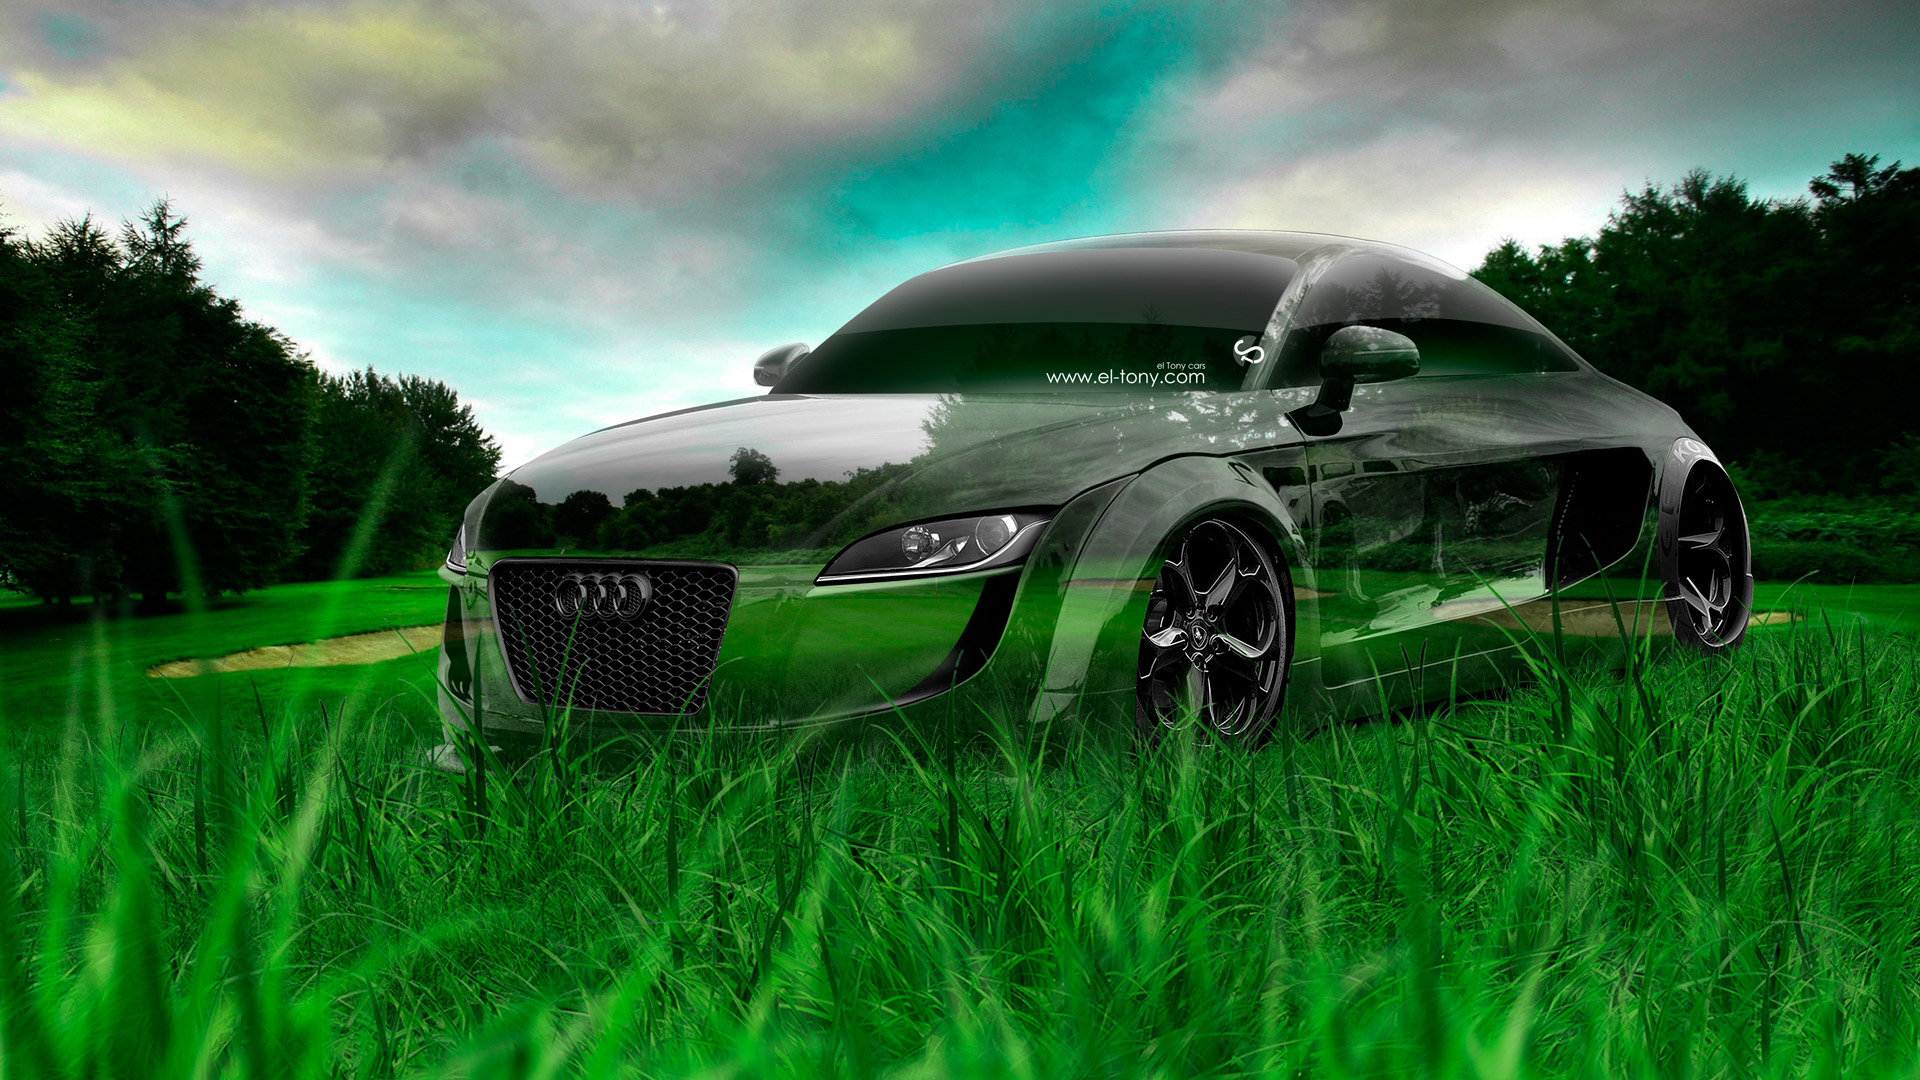 Audi R8 Crystal Nature Car 2014 · Audi TT Tuning Crystal Nature Car 2014